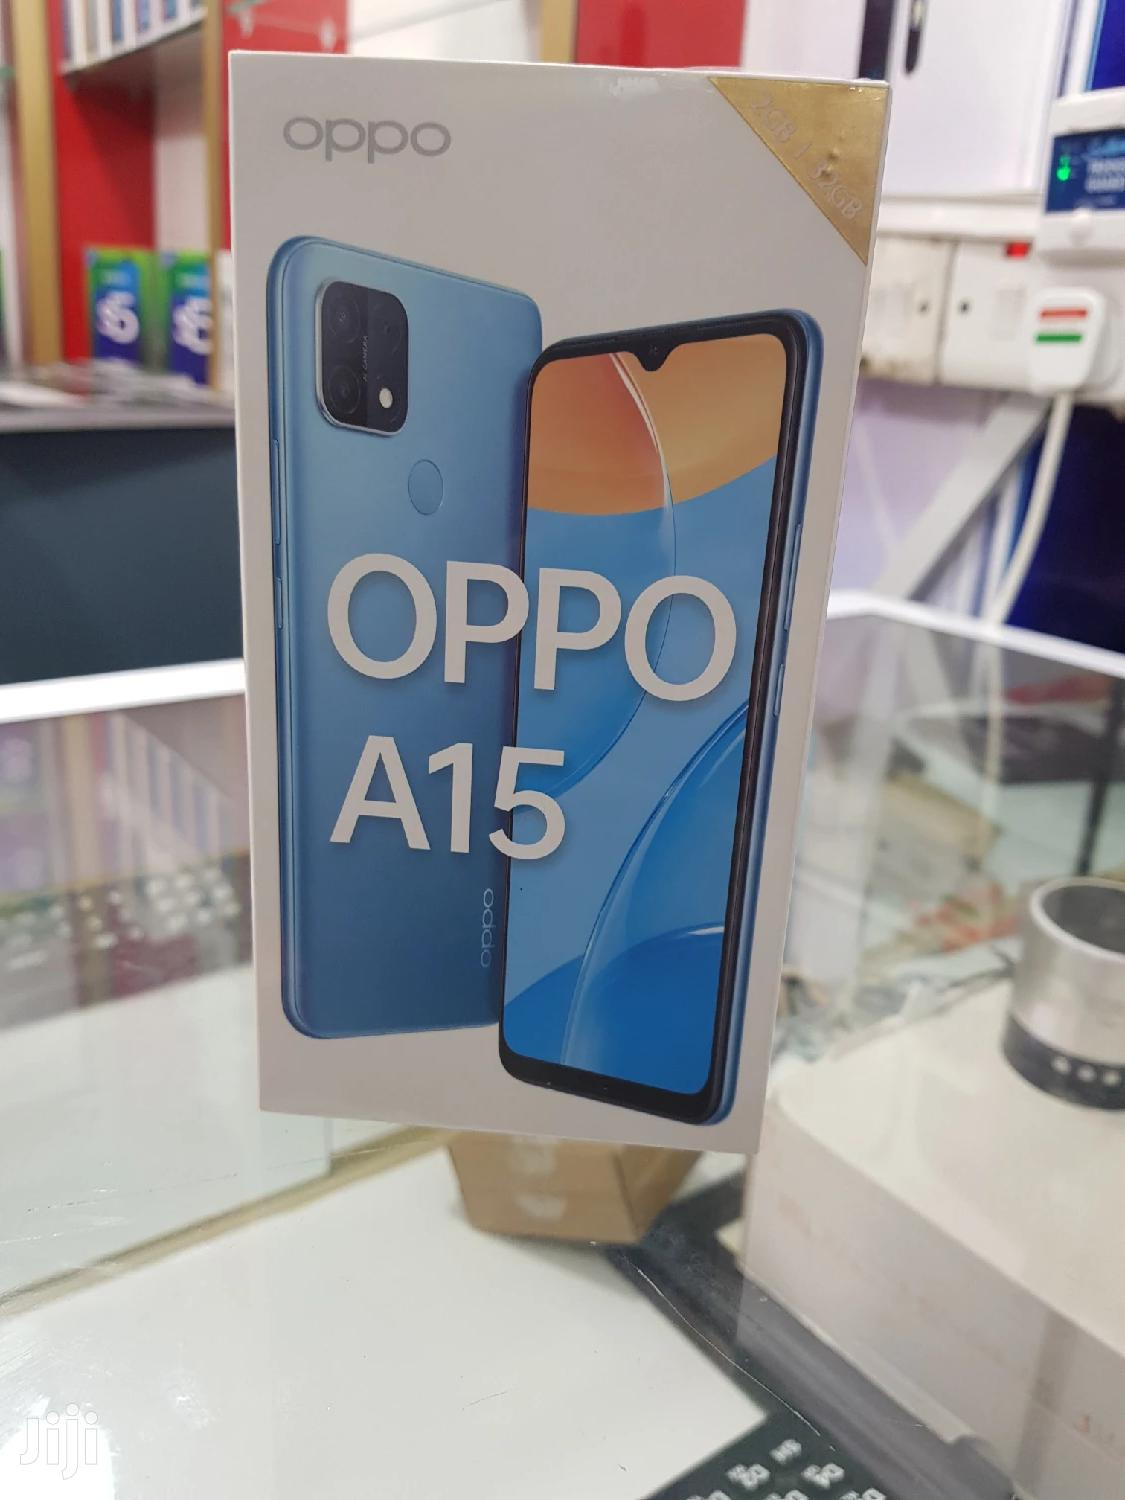 New Oppo A15 32GB Blue | Mobile Phones for sale in Ilala, Dar es Salaam, Tanzania